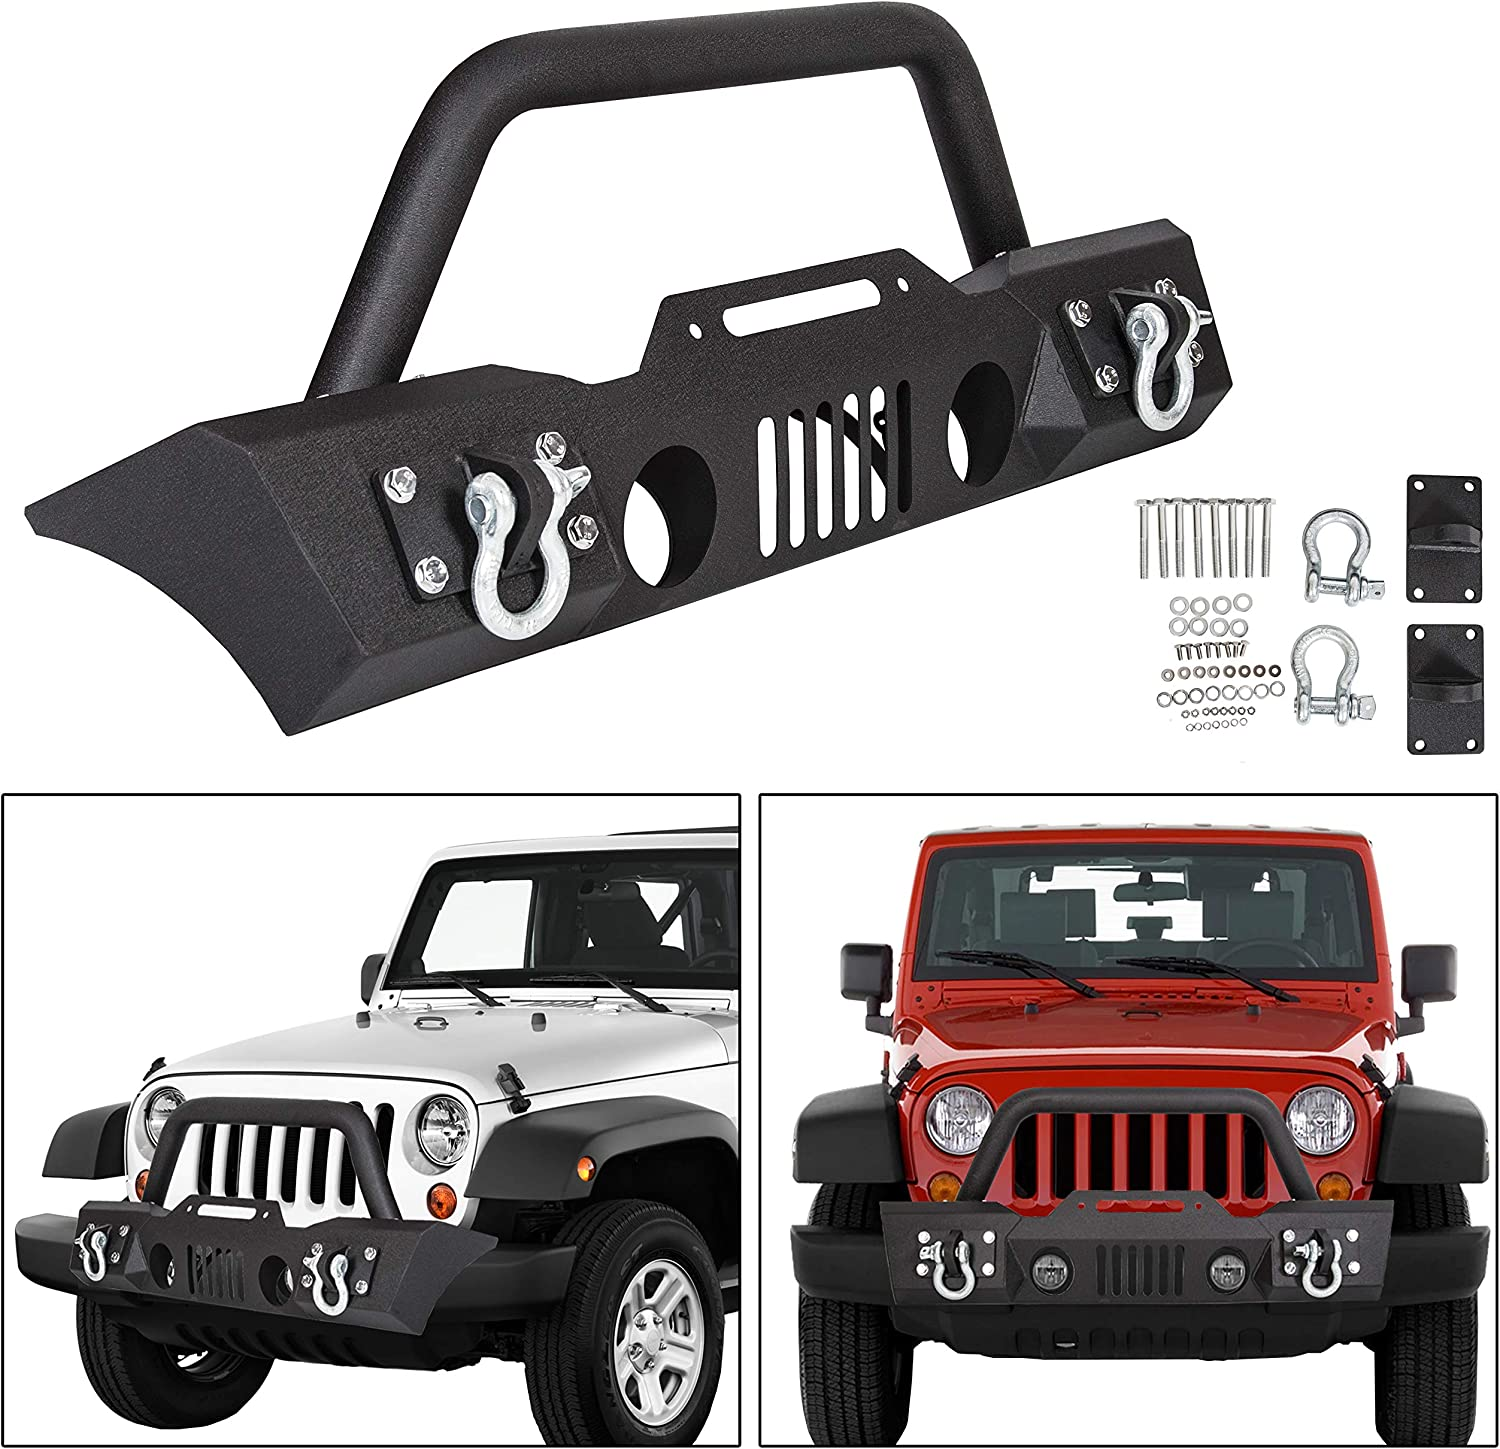 ECOTRIC Stubby Front Bumper with Fog Light Housing for 07-17 Jeep Wrangler JK